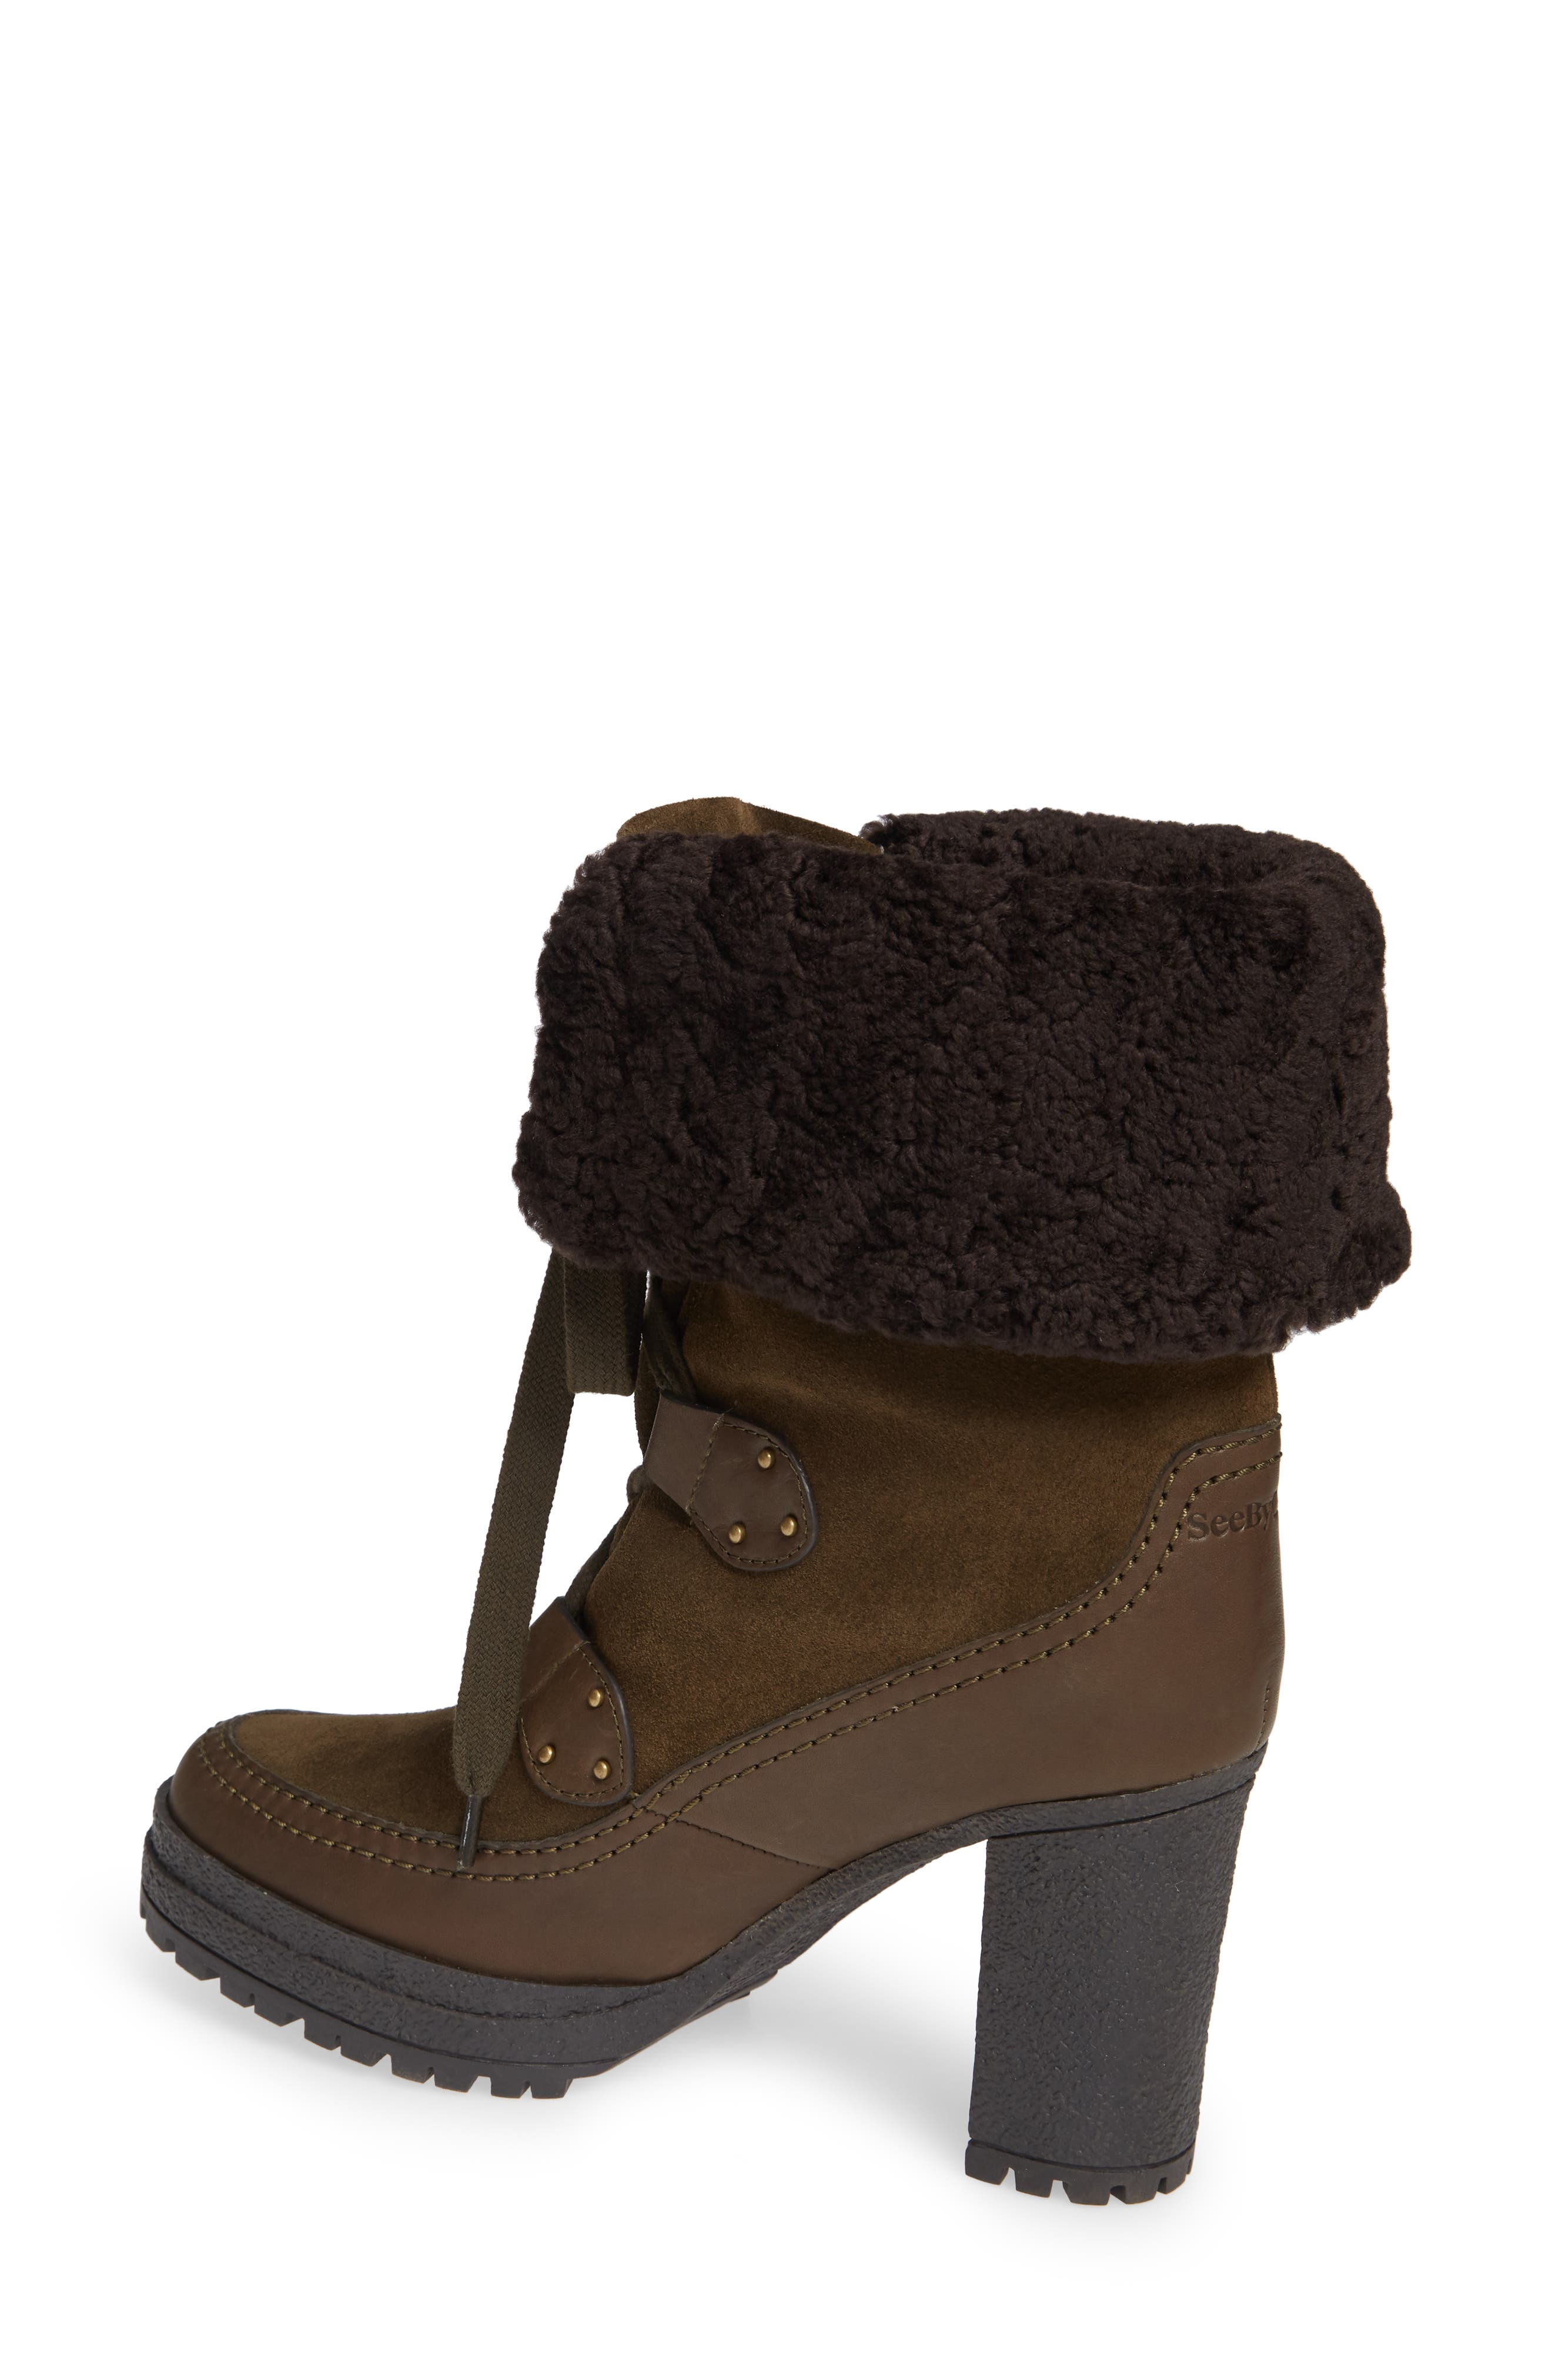 SEE BY CHLOÉ,                             Verena Shearling Cuff Bootie,                             Alternate thumbnail 2, color,                             300